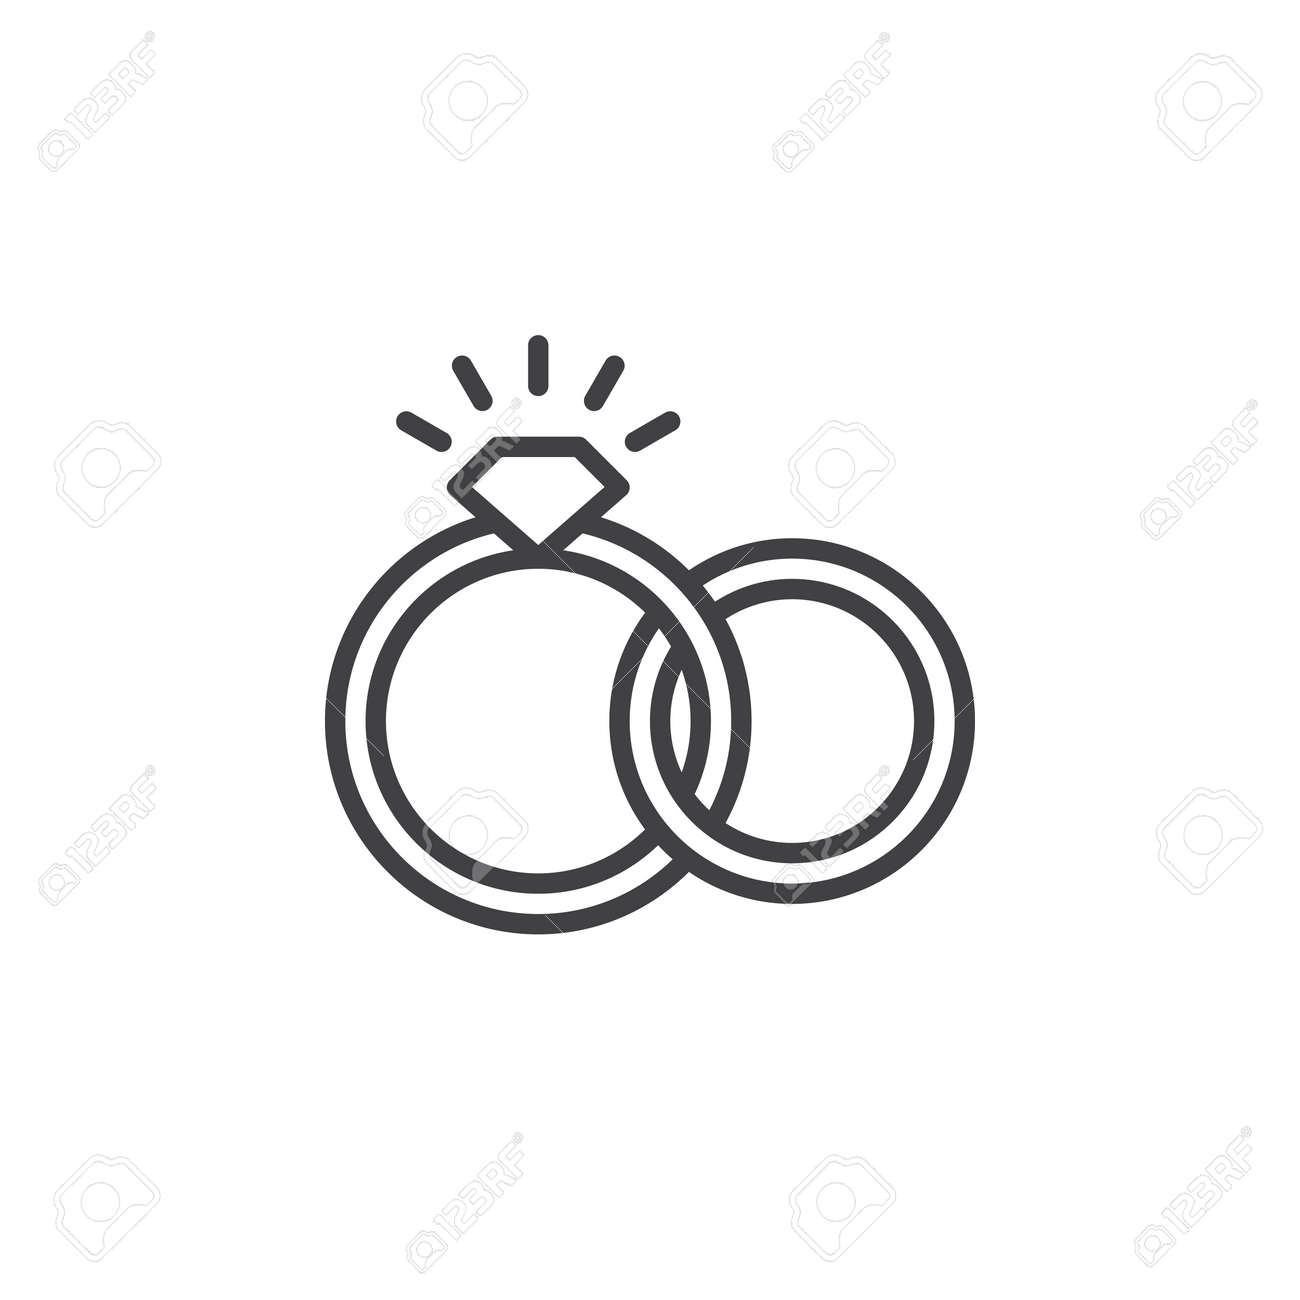 Engagement Wedding Rings Line Icon Outline Vector Sign Linear